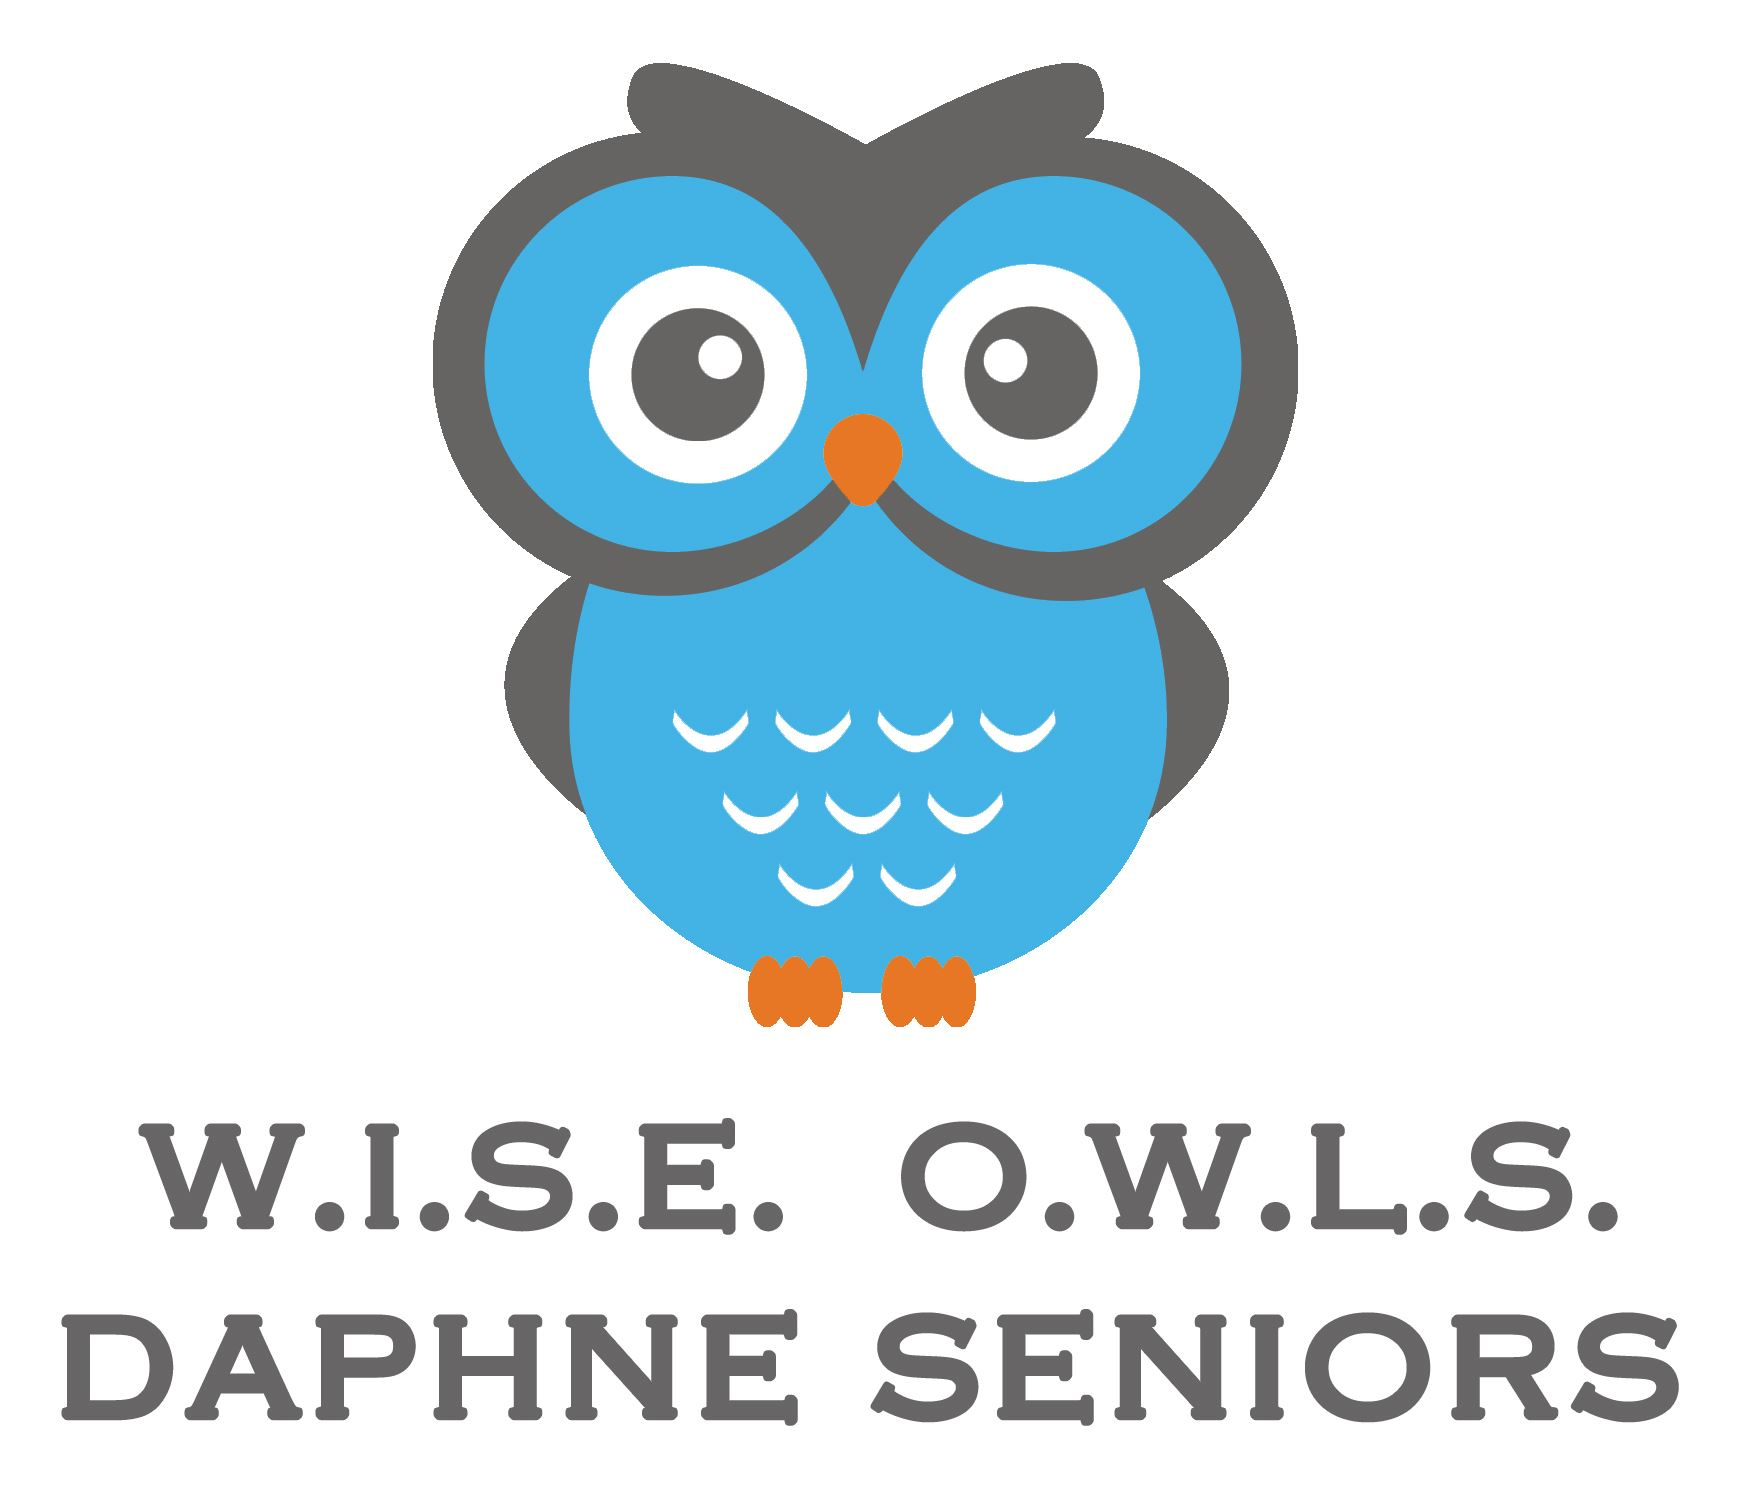 WISE OWLS